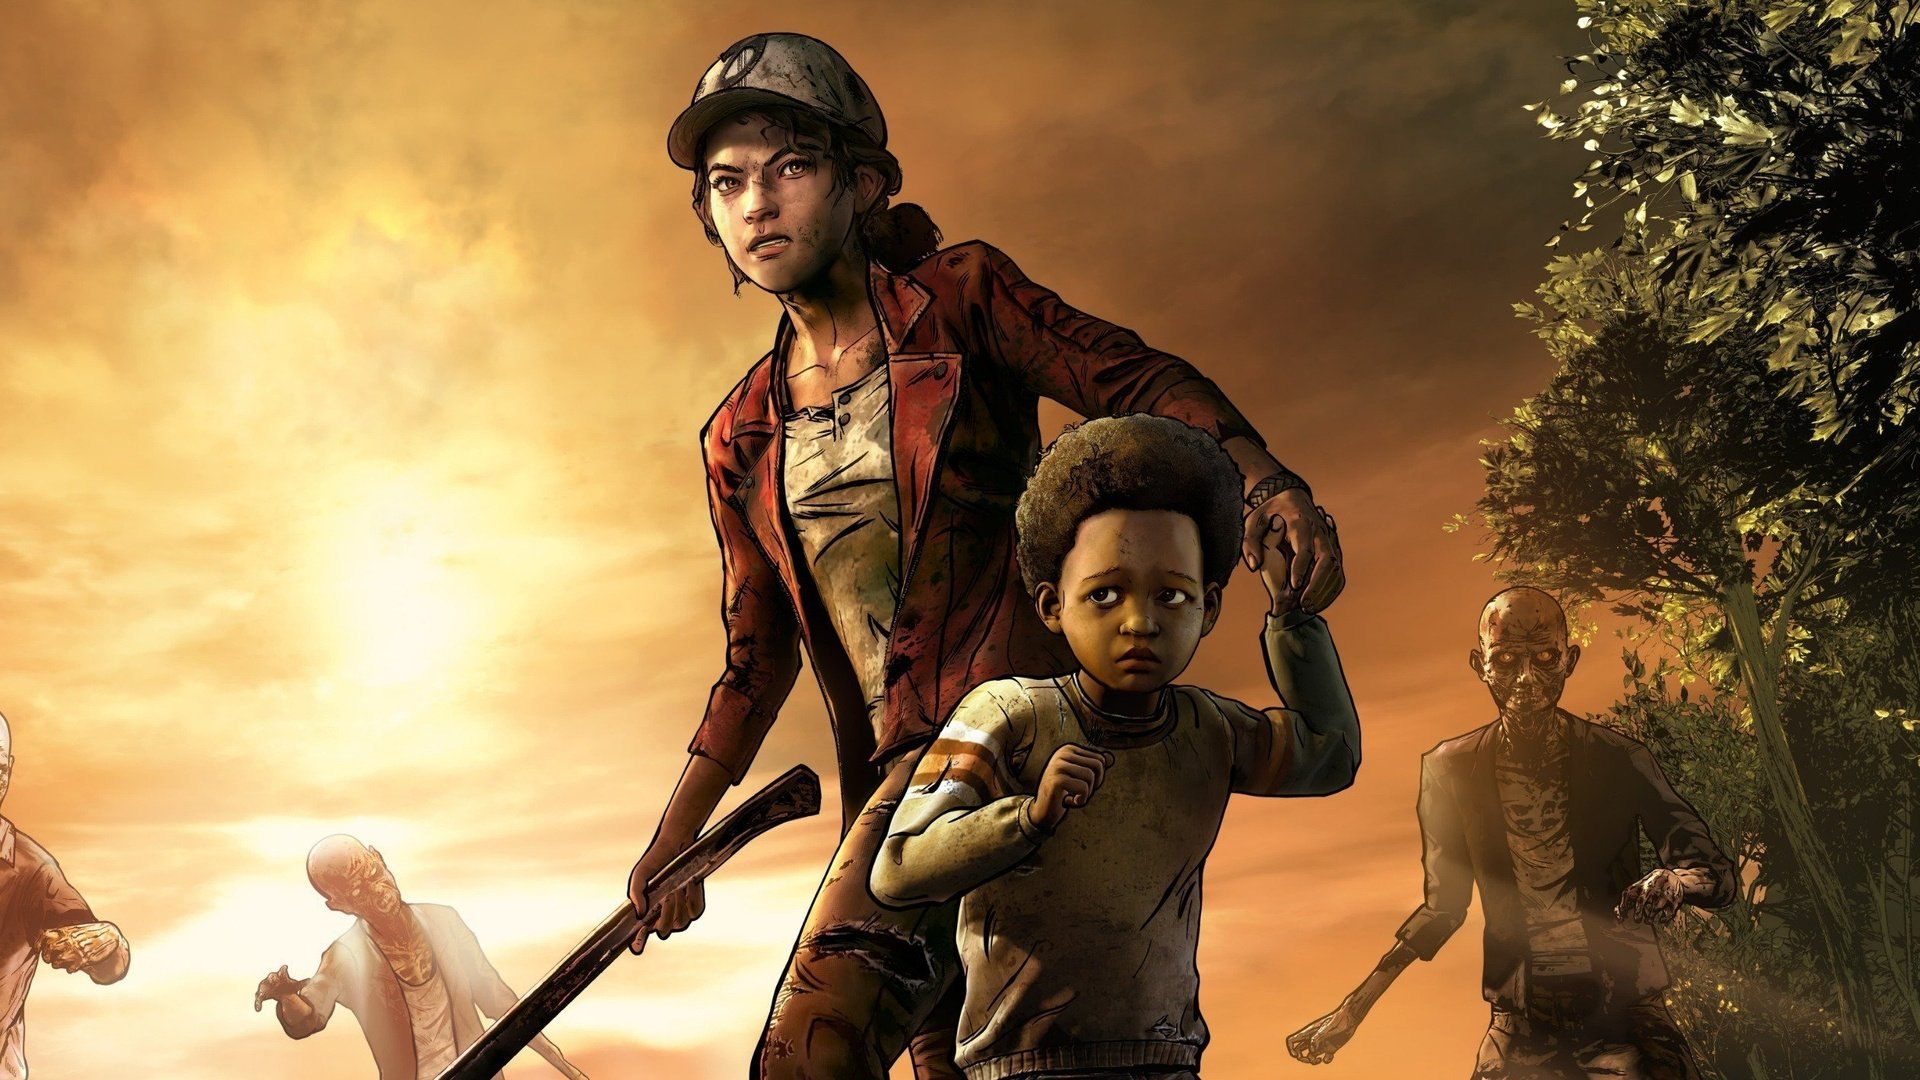 Telltale is Negotiating With Other Companies the Conclusion of The Walking Dead